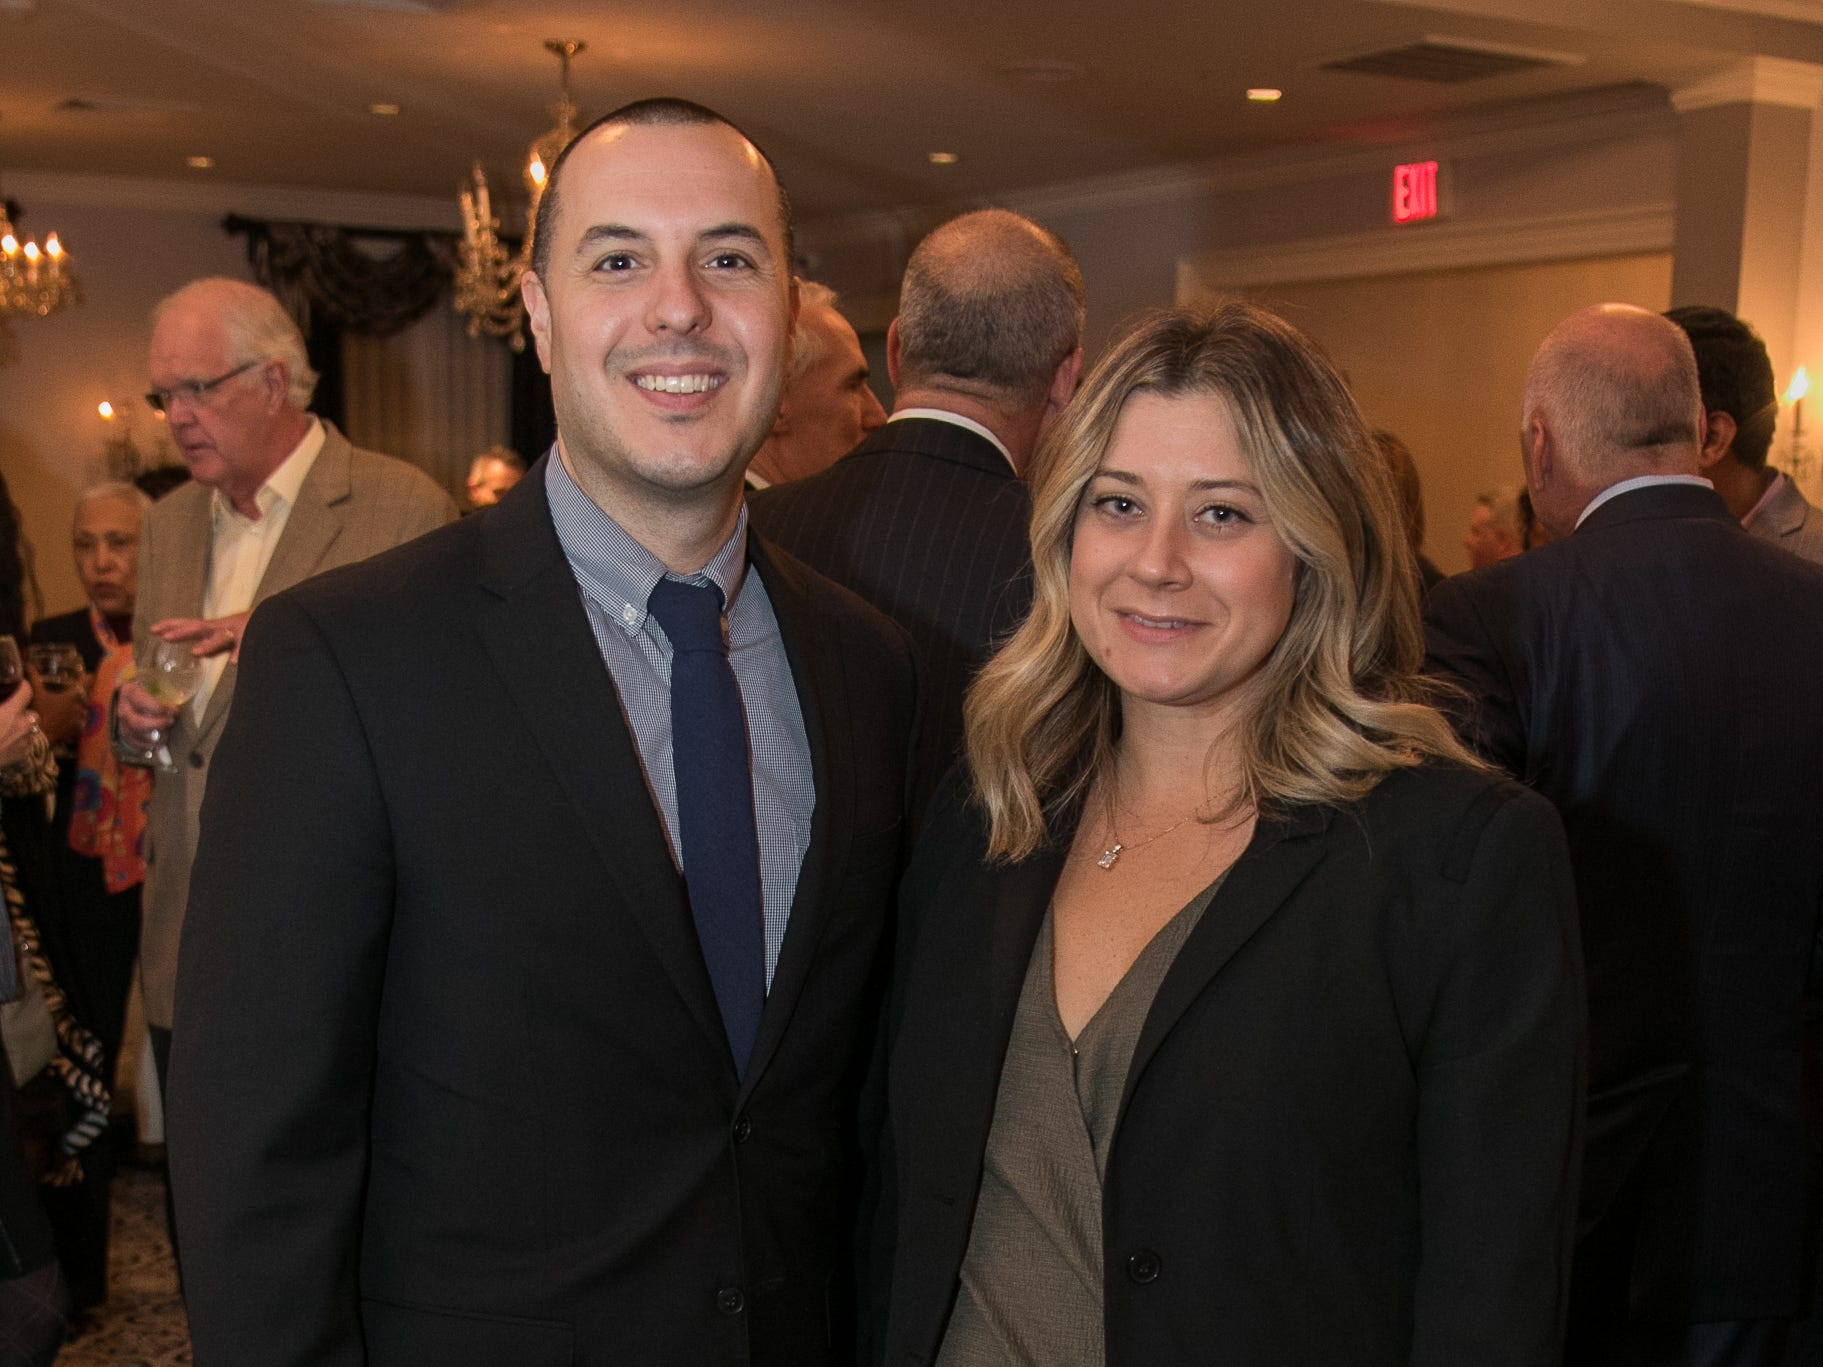 Frank DiDolci, Jaime Marley. The Bergen Volunteer Center celebrated its 10th anniversary of the Bergen LEADS program at The Hearts of Gold Dinner and Auction at the Stony Hill Inn in Hackensack. 11/08/2018